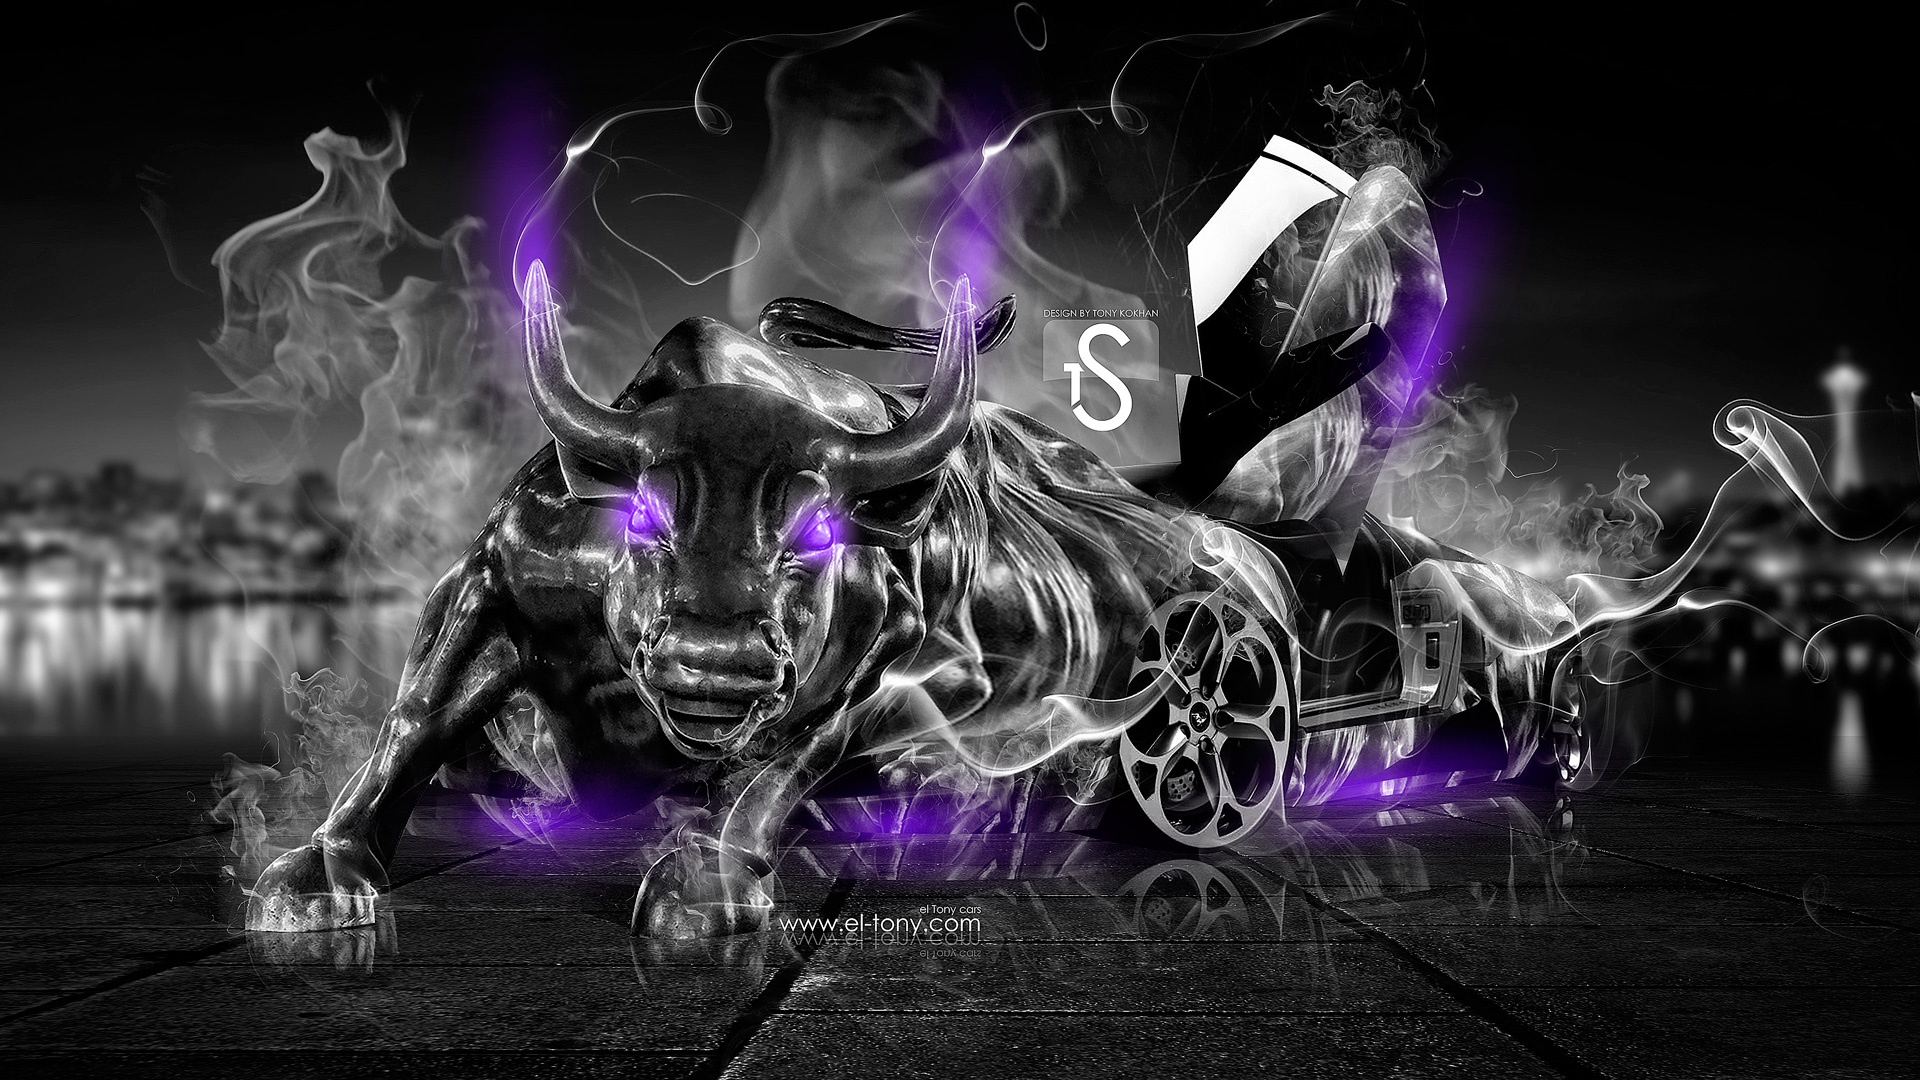 Violet Smoke Art Wallpapers: Lamborghini Murcielago Fantasy Fire Smoke Bull 2013